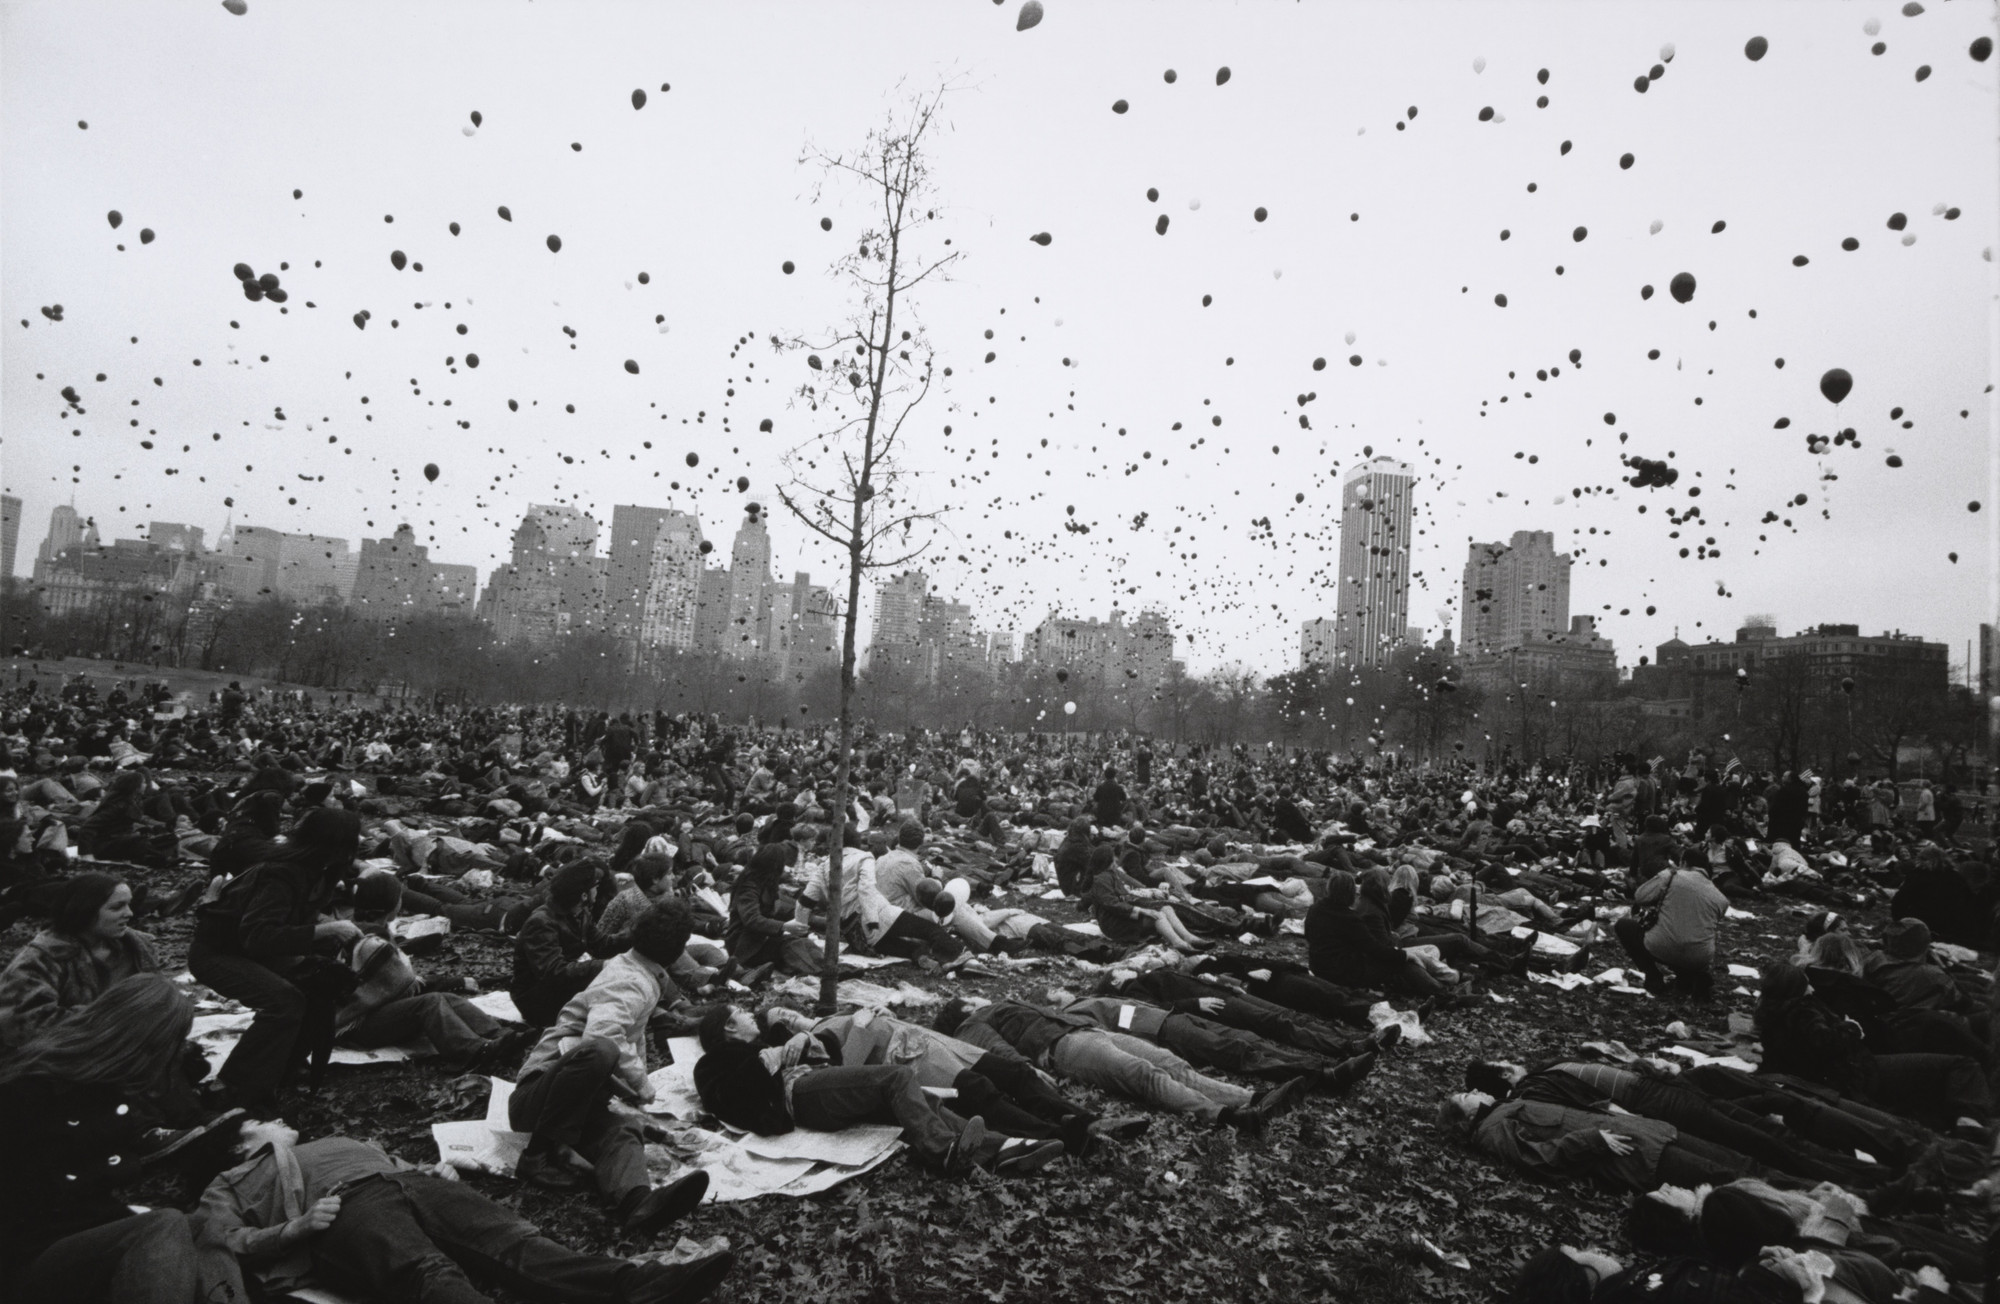 Garry Winogrand. Peace Demonstration, Central Park, New York. 1970